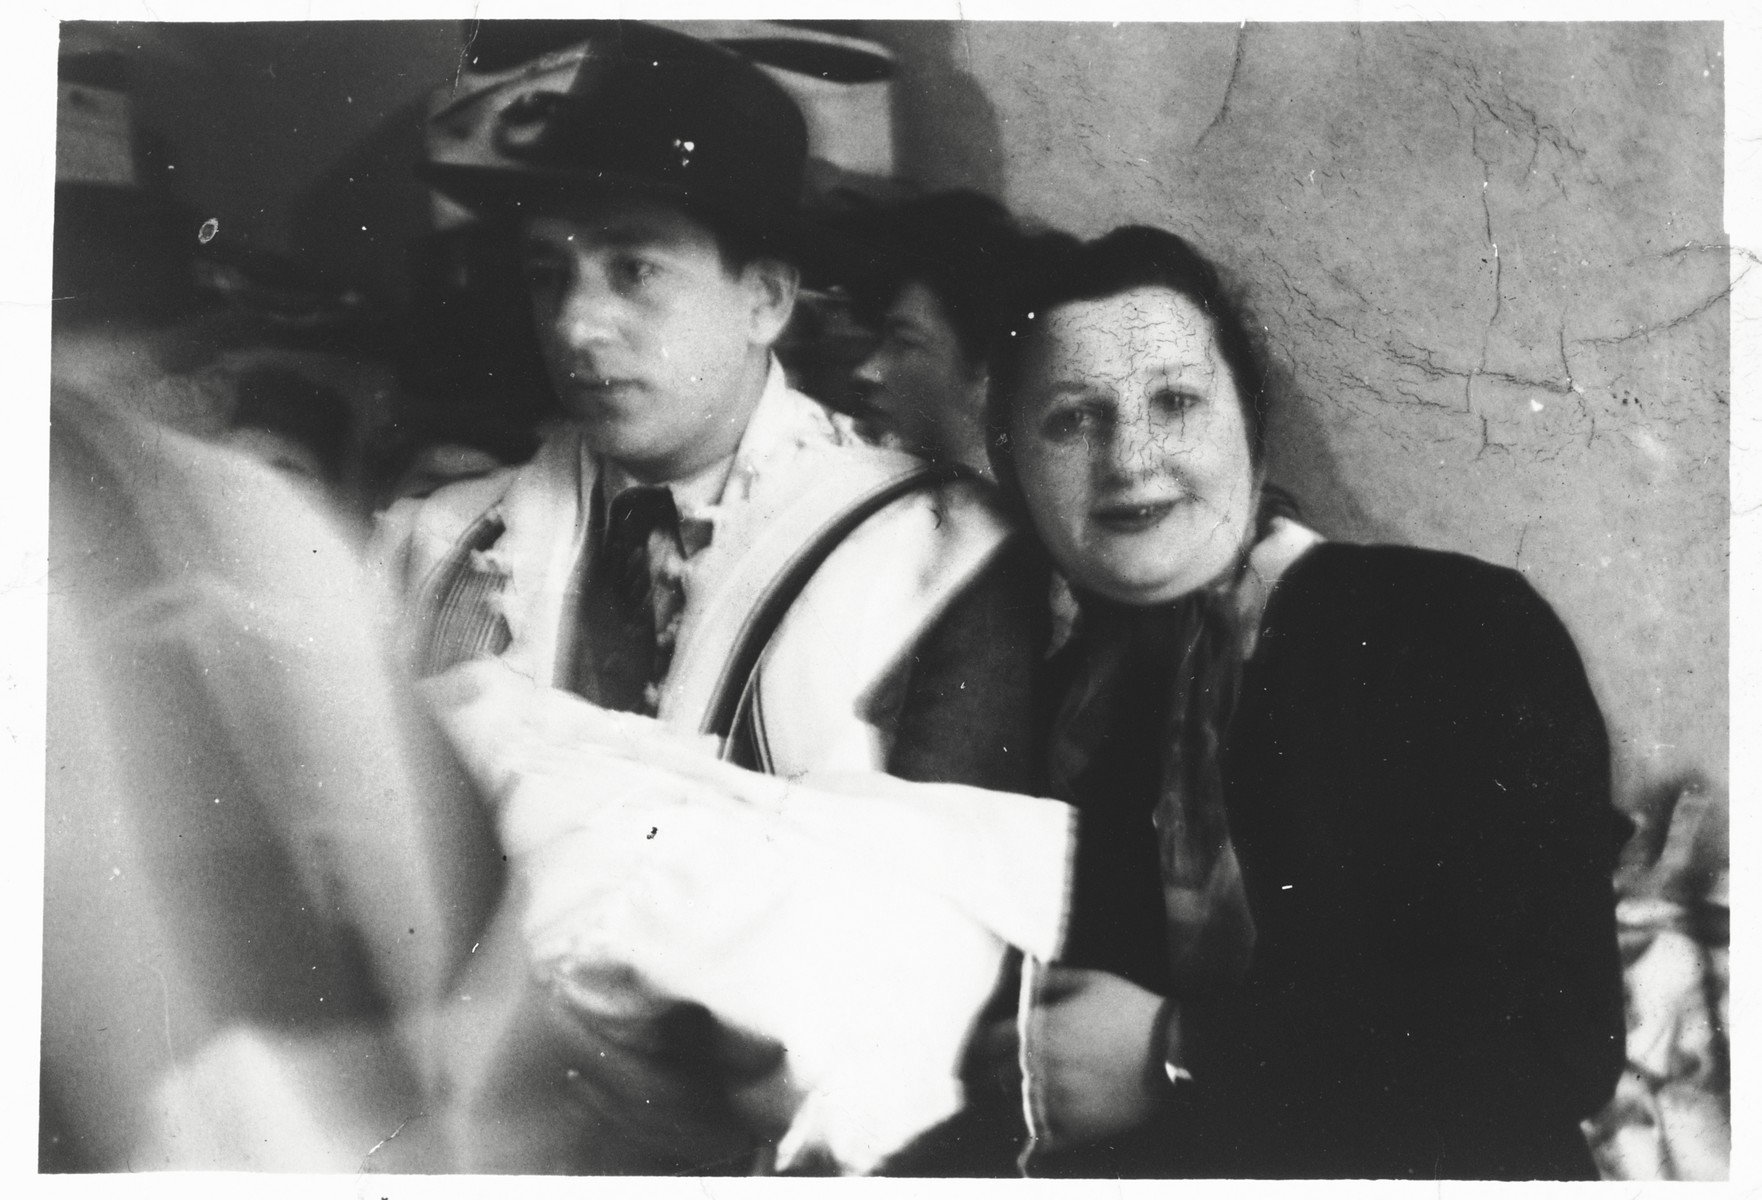 Itzhak Gendelman serves as the godfather at the circumcision of Arele Werkel, the son of Taibel and Yehiel Greenberg at the Ebelsberg displaced persons camp near Linz, Austria.  Among those pictured are Itzhak Gendelman (holding the baby) and Marim Broder.